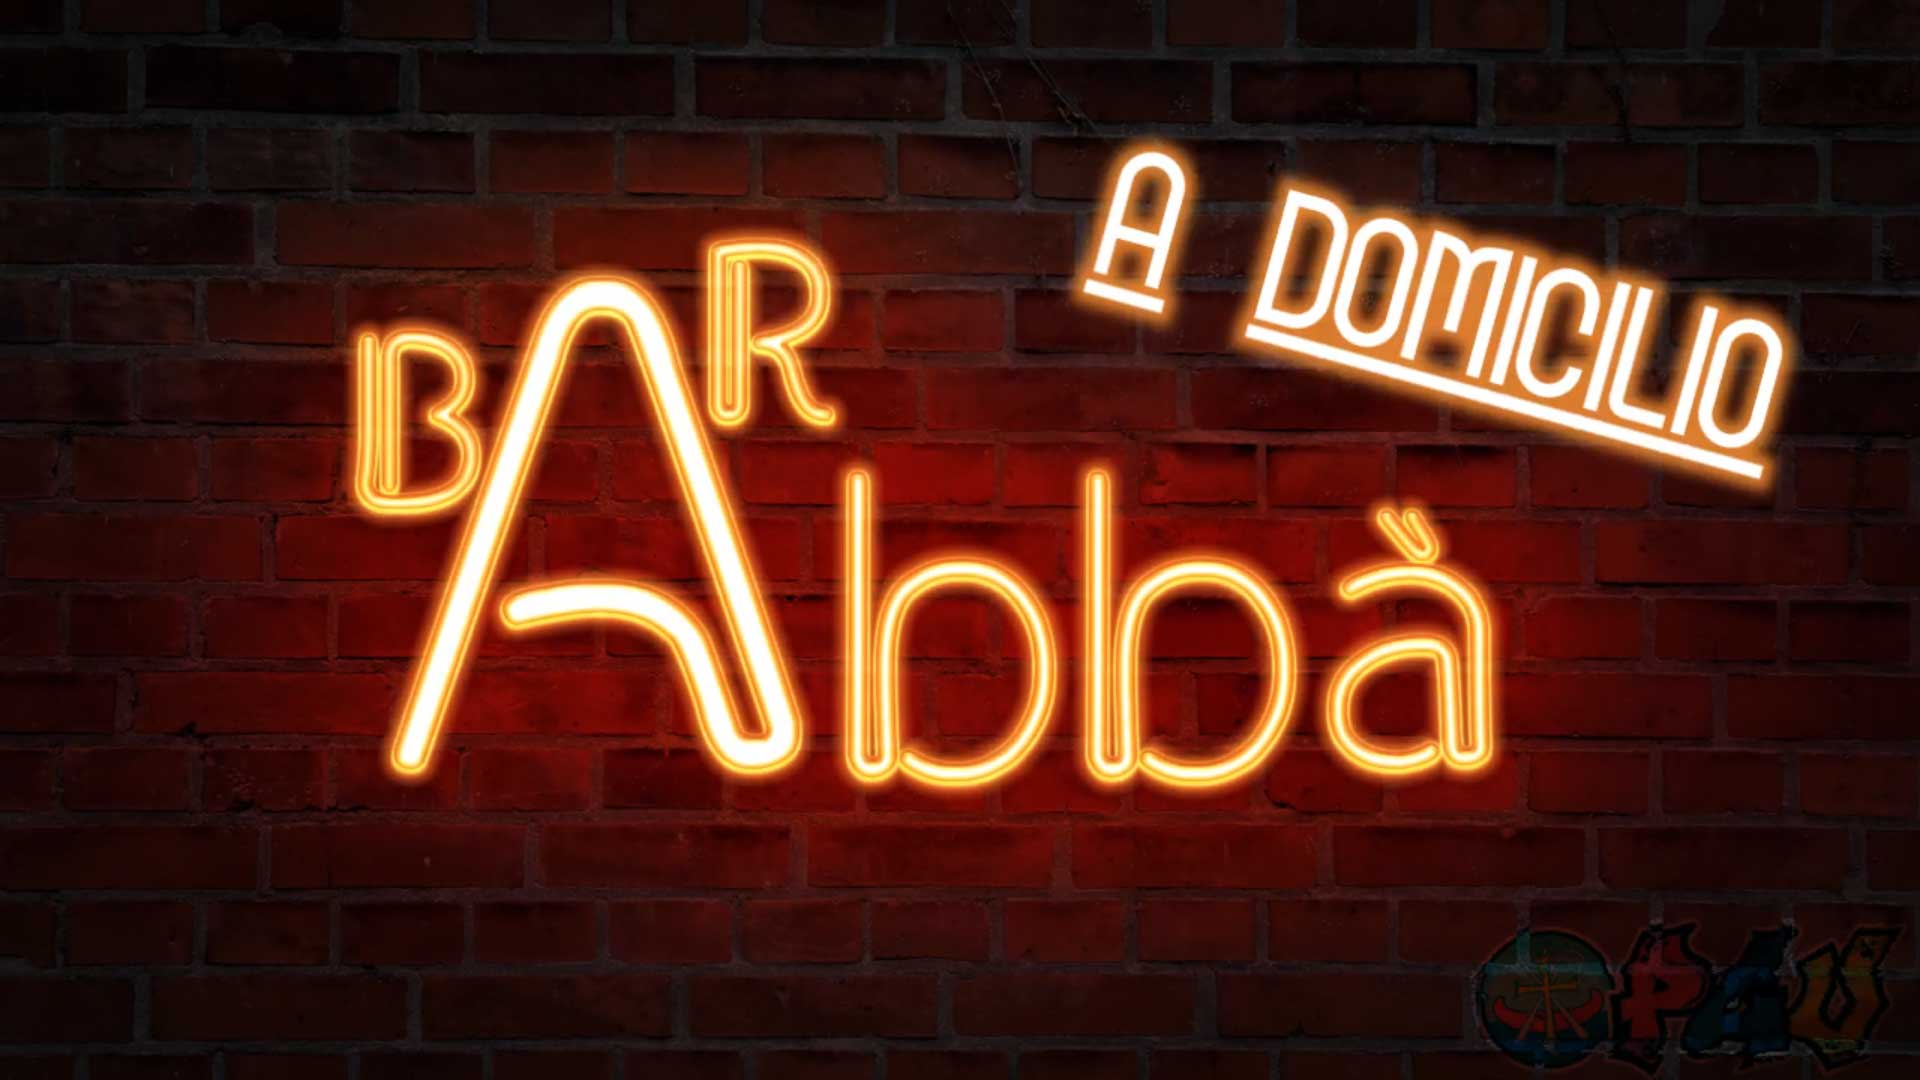 bar abba a domicilio